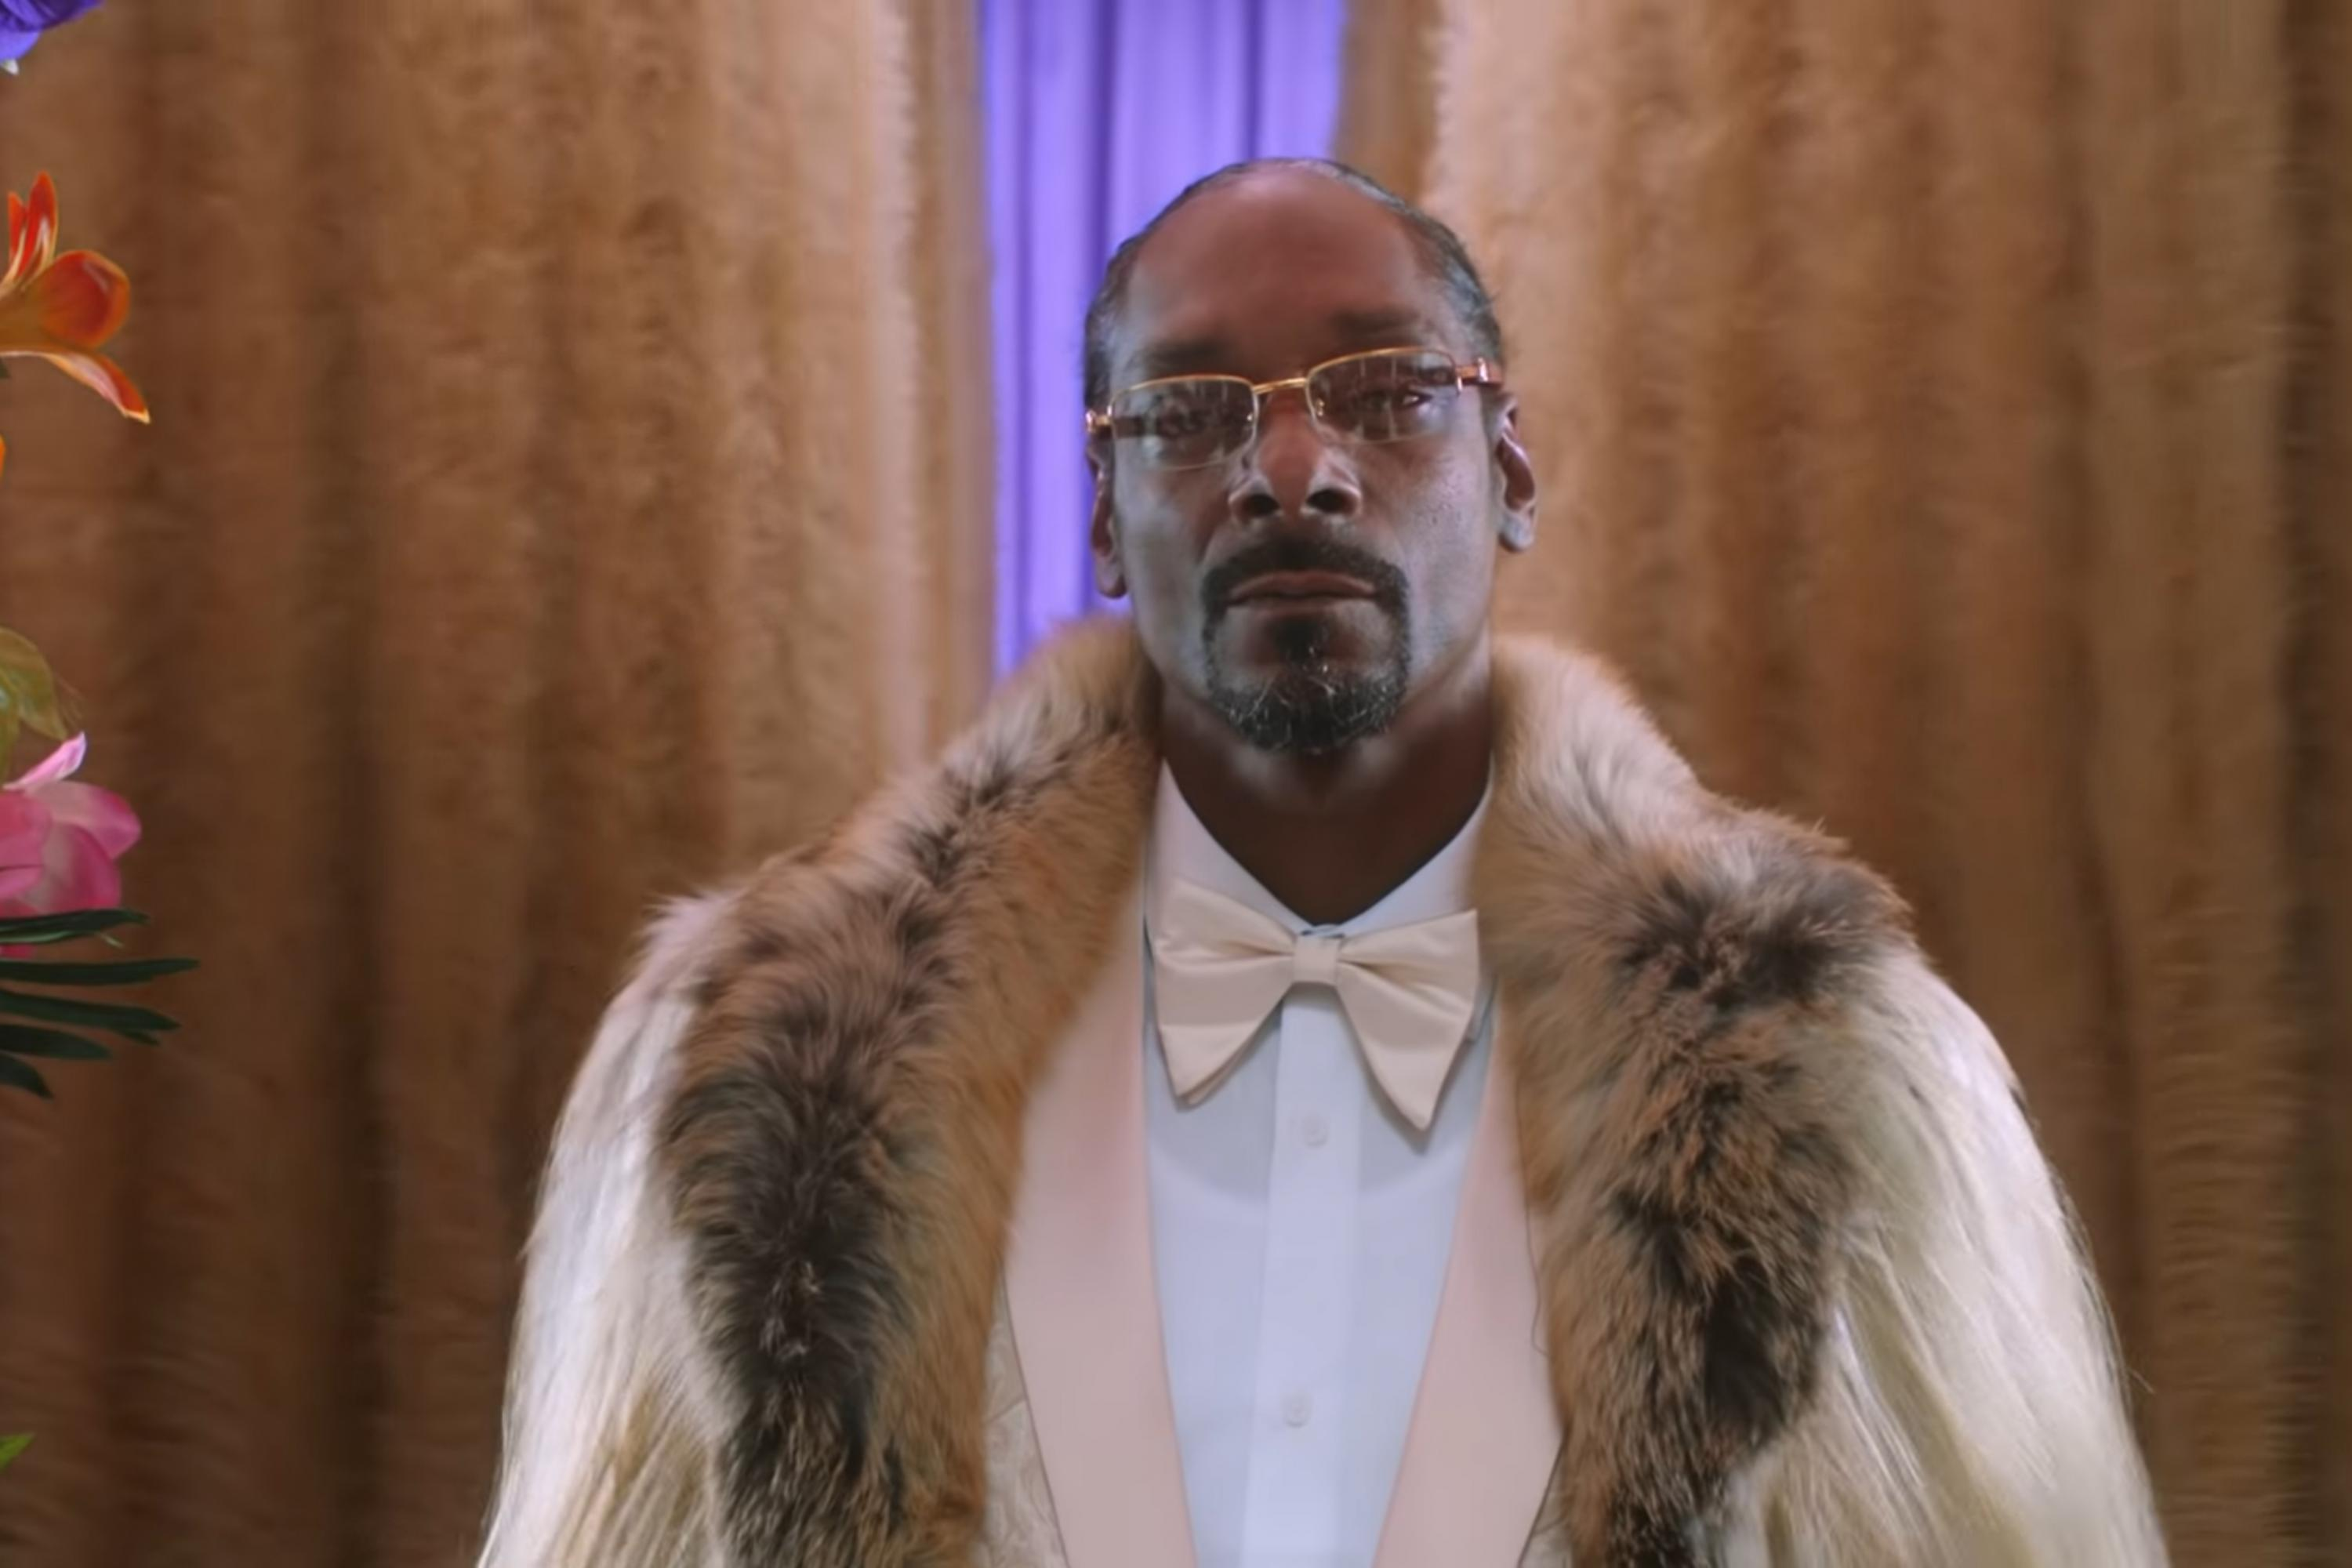 Snoop Dogg becomes 'Smoooth Dogg' and spreads a lot of peanut butter in campaign for online payment brand Klarna